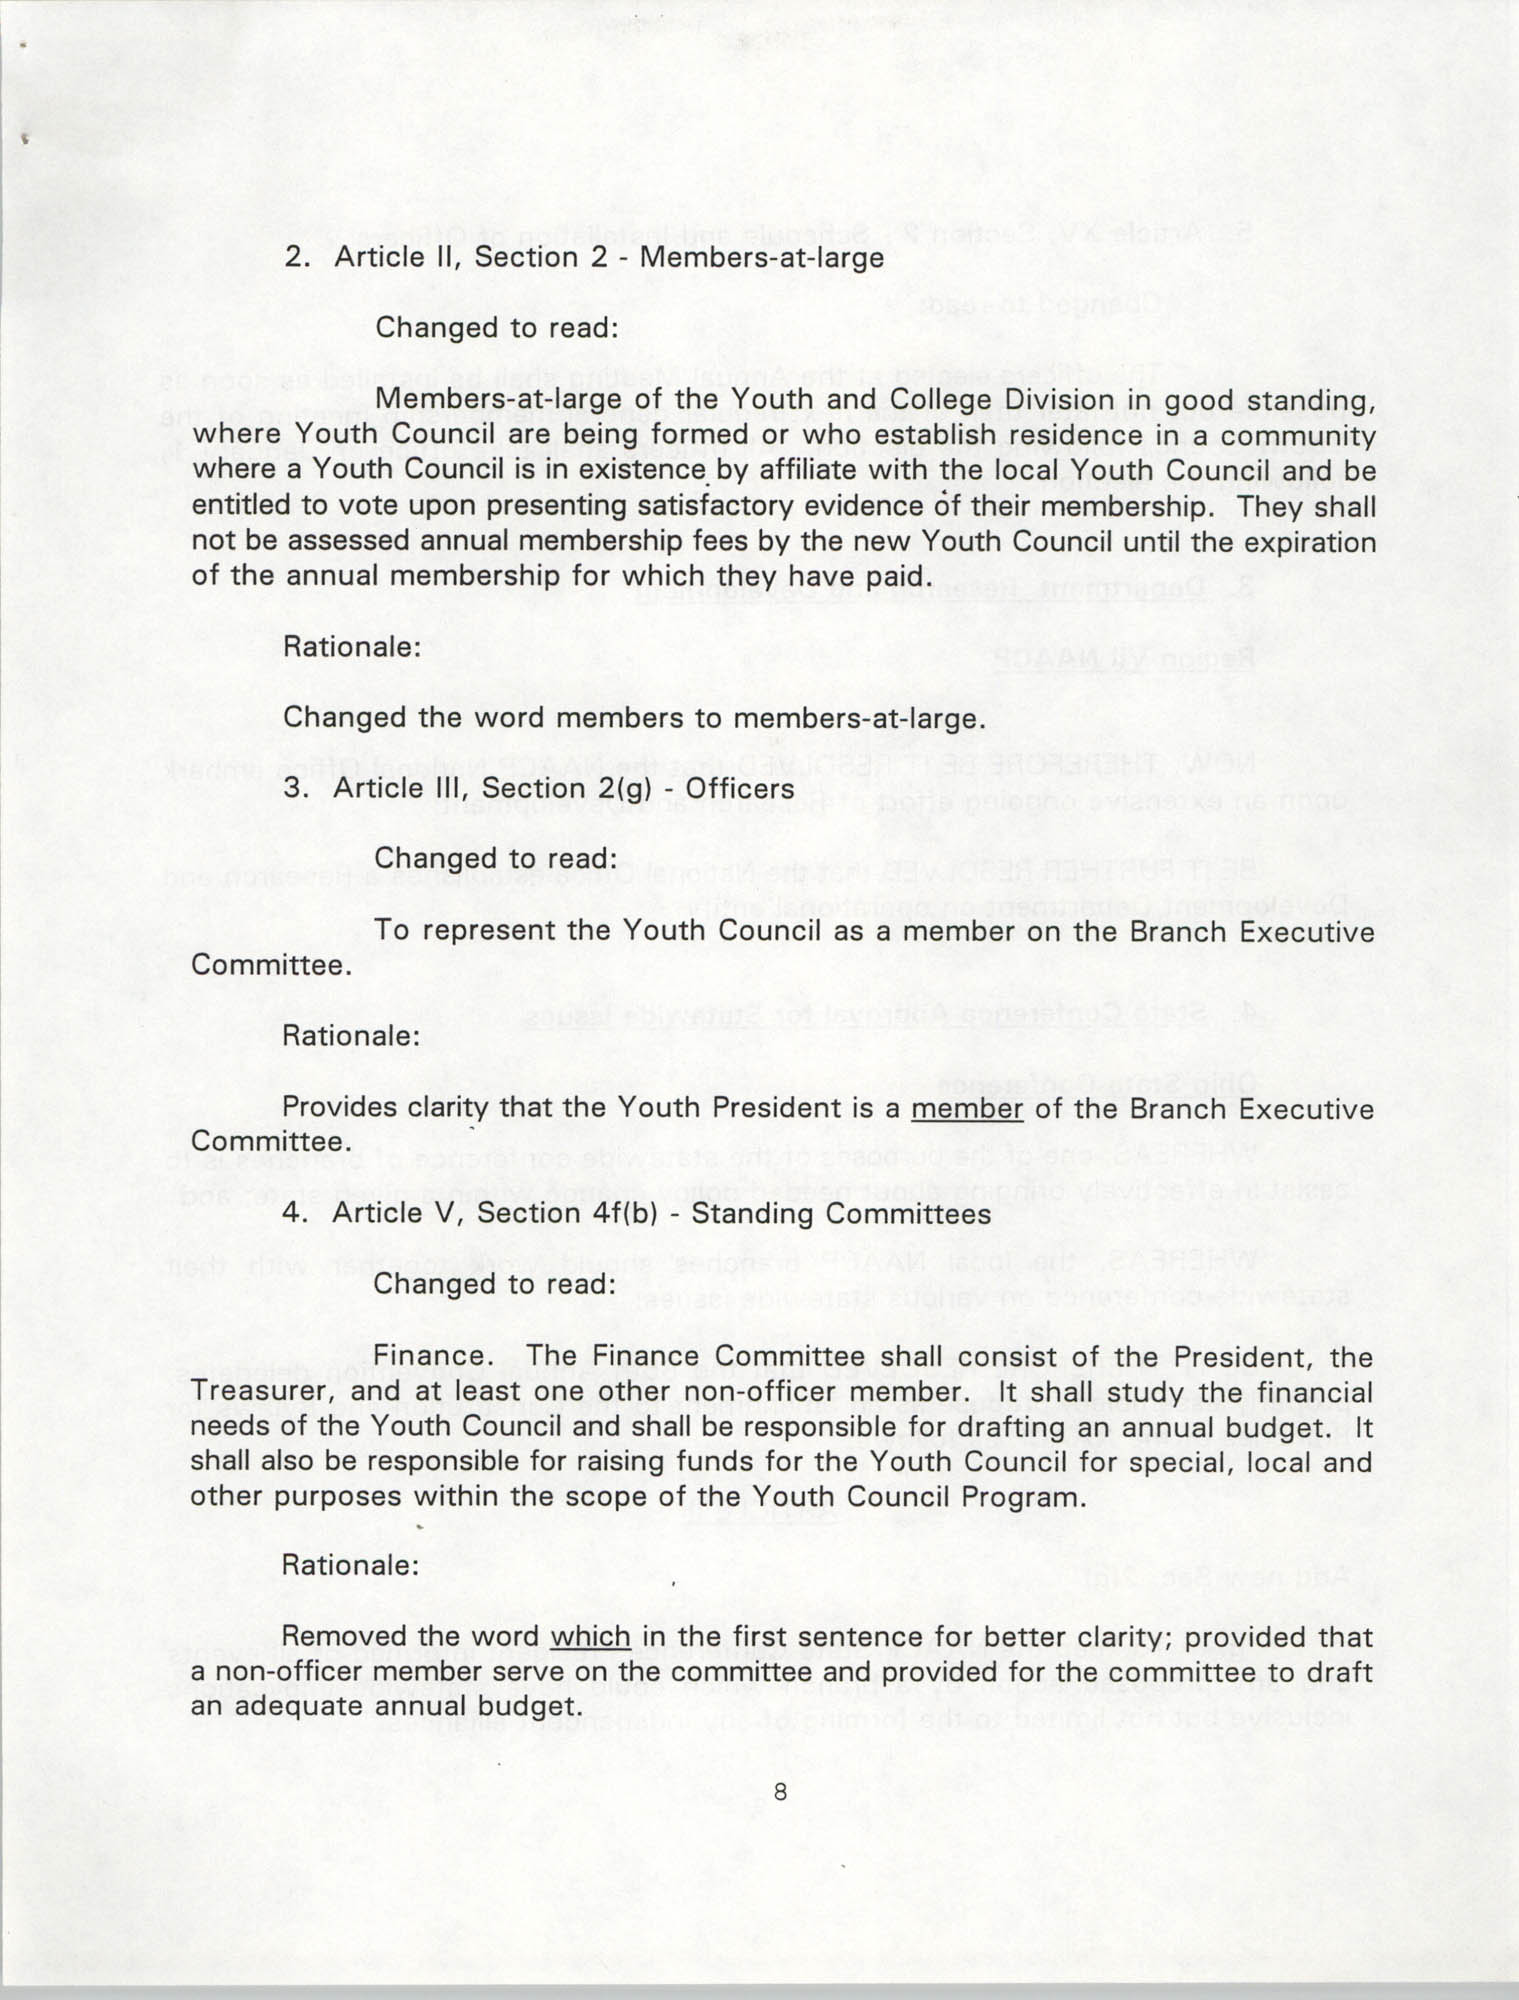 Resolutions Submitted Under Article X, Section 2 of the Constitution of the NAACP, 1994, Page 8